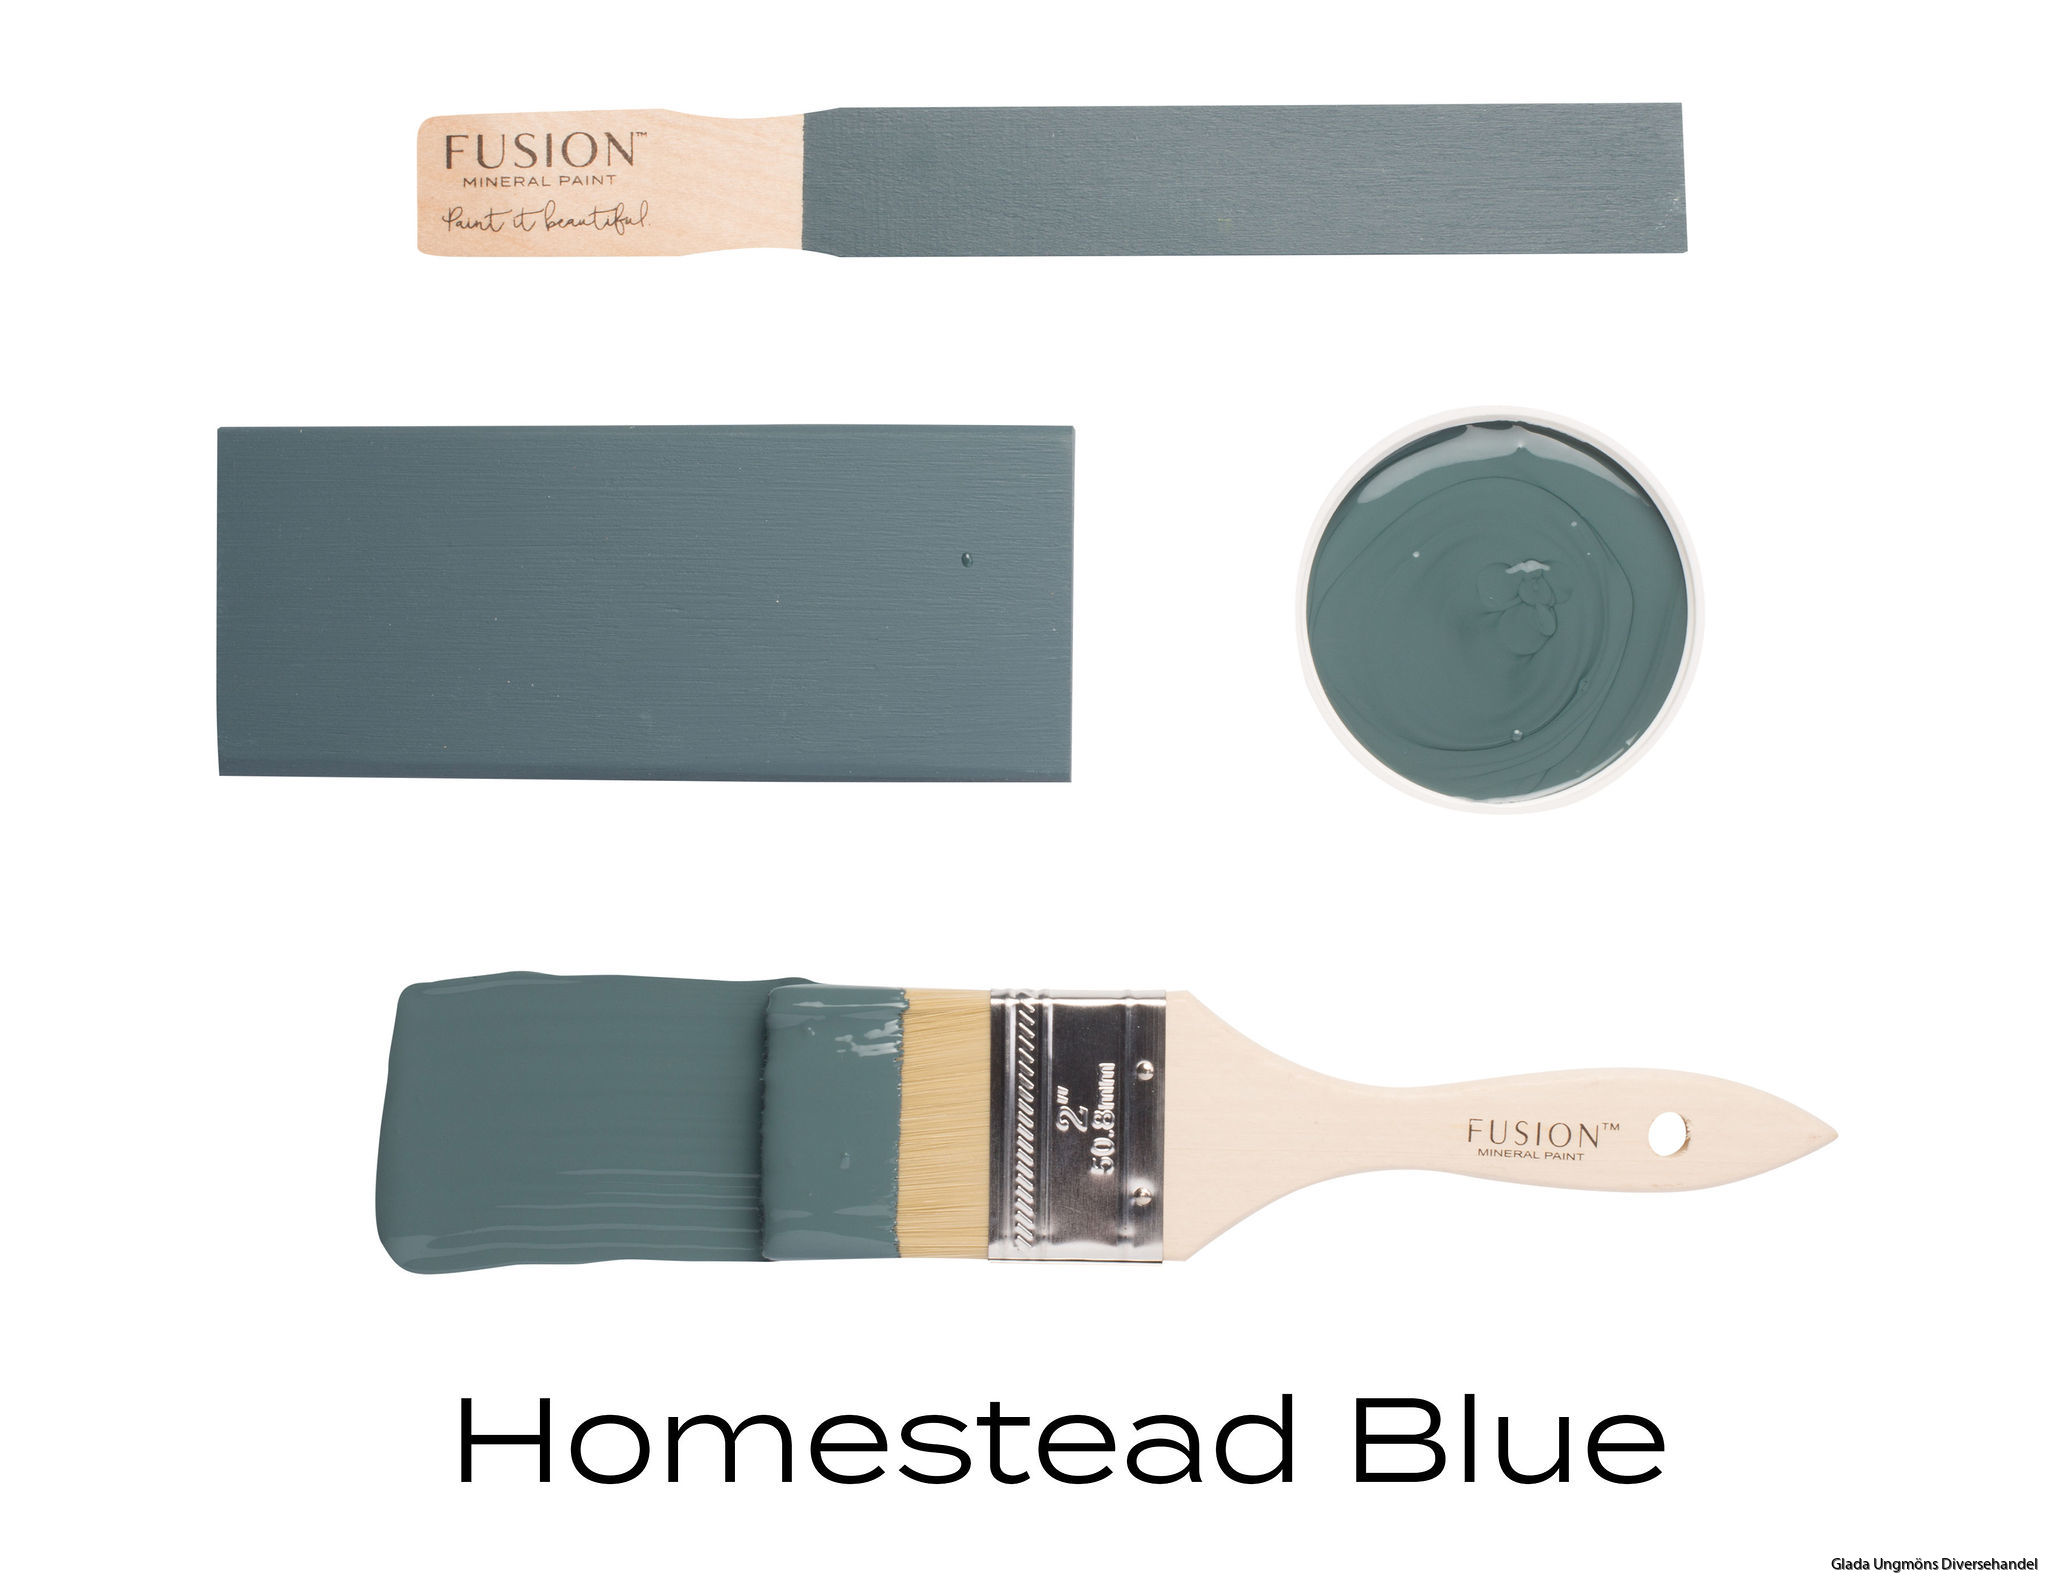 T2HOMESTEADBLUE